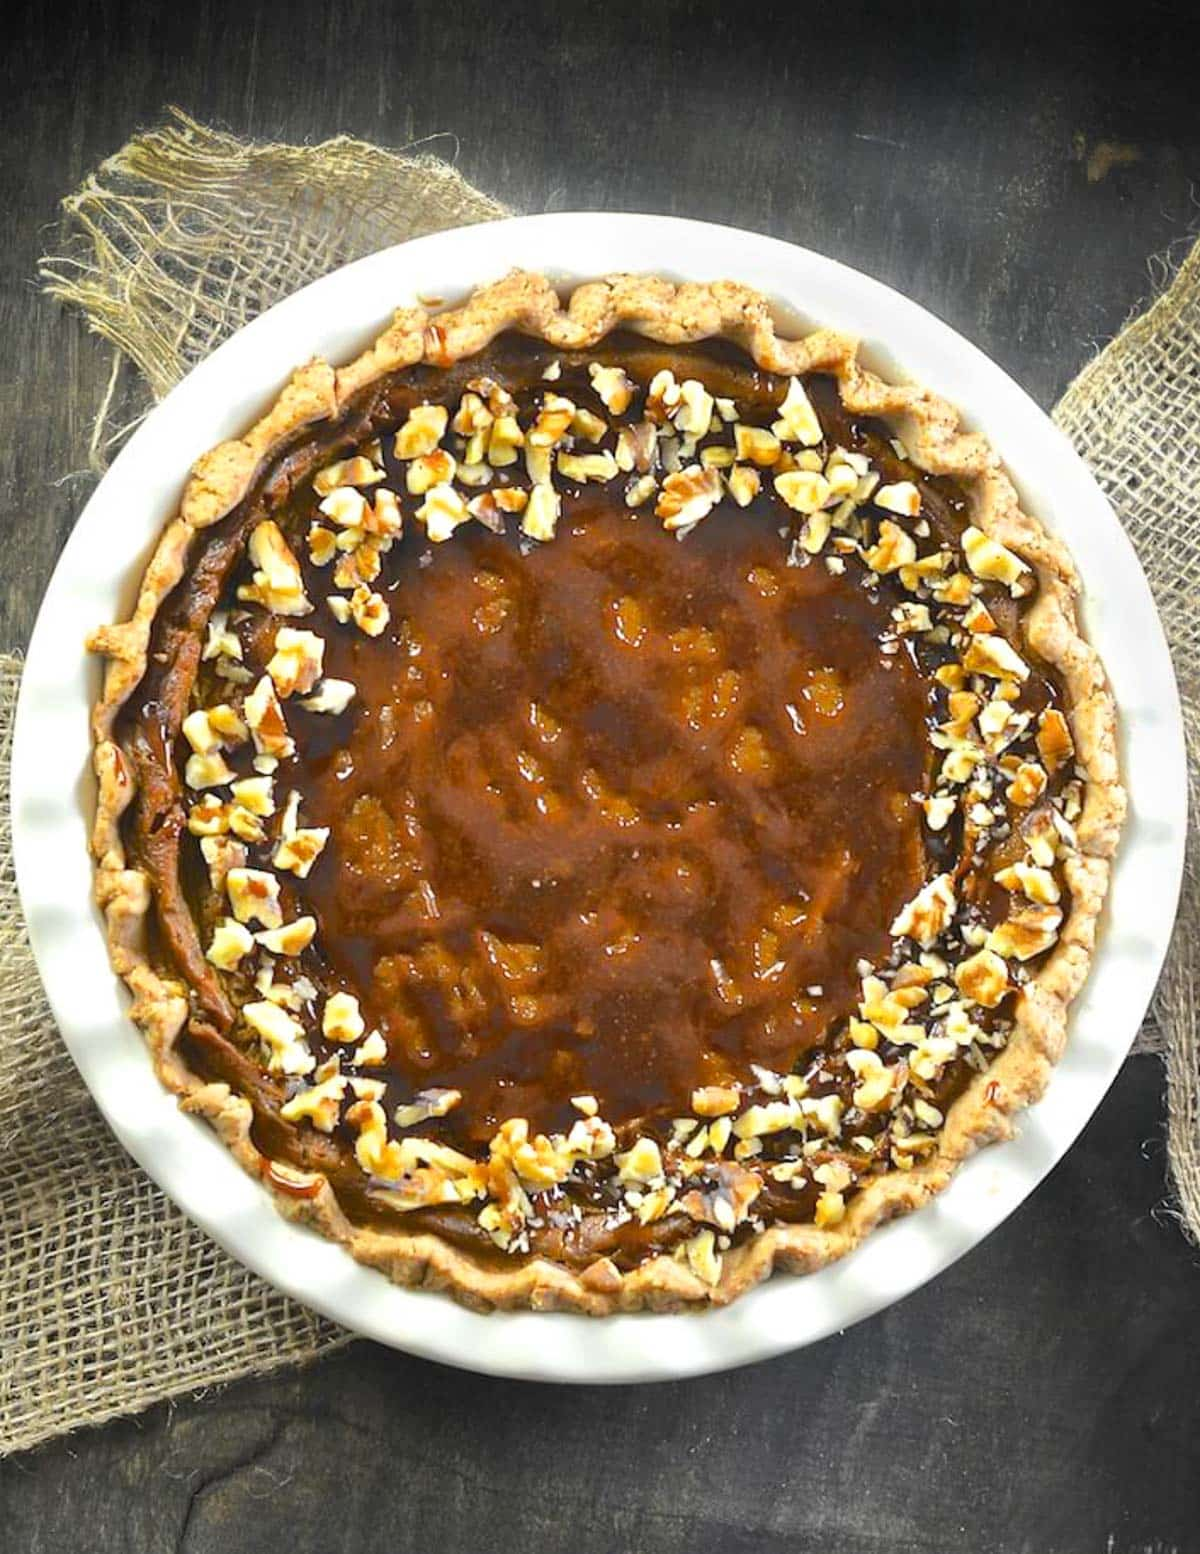 a vegan pumpkin pie topped with caramel and nuts